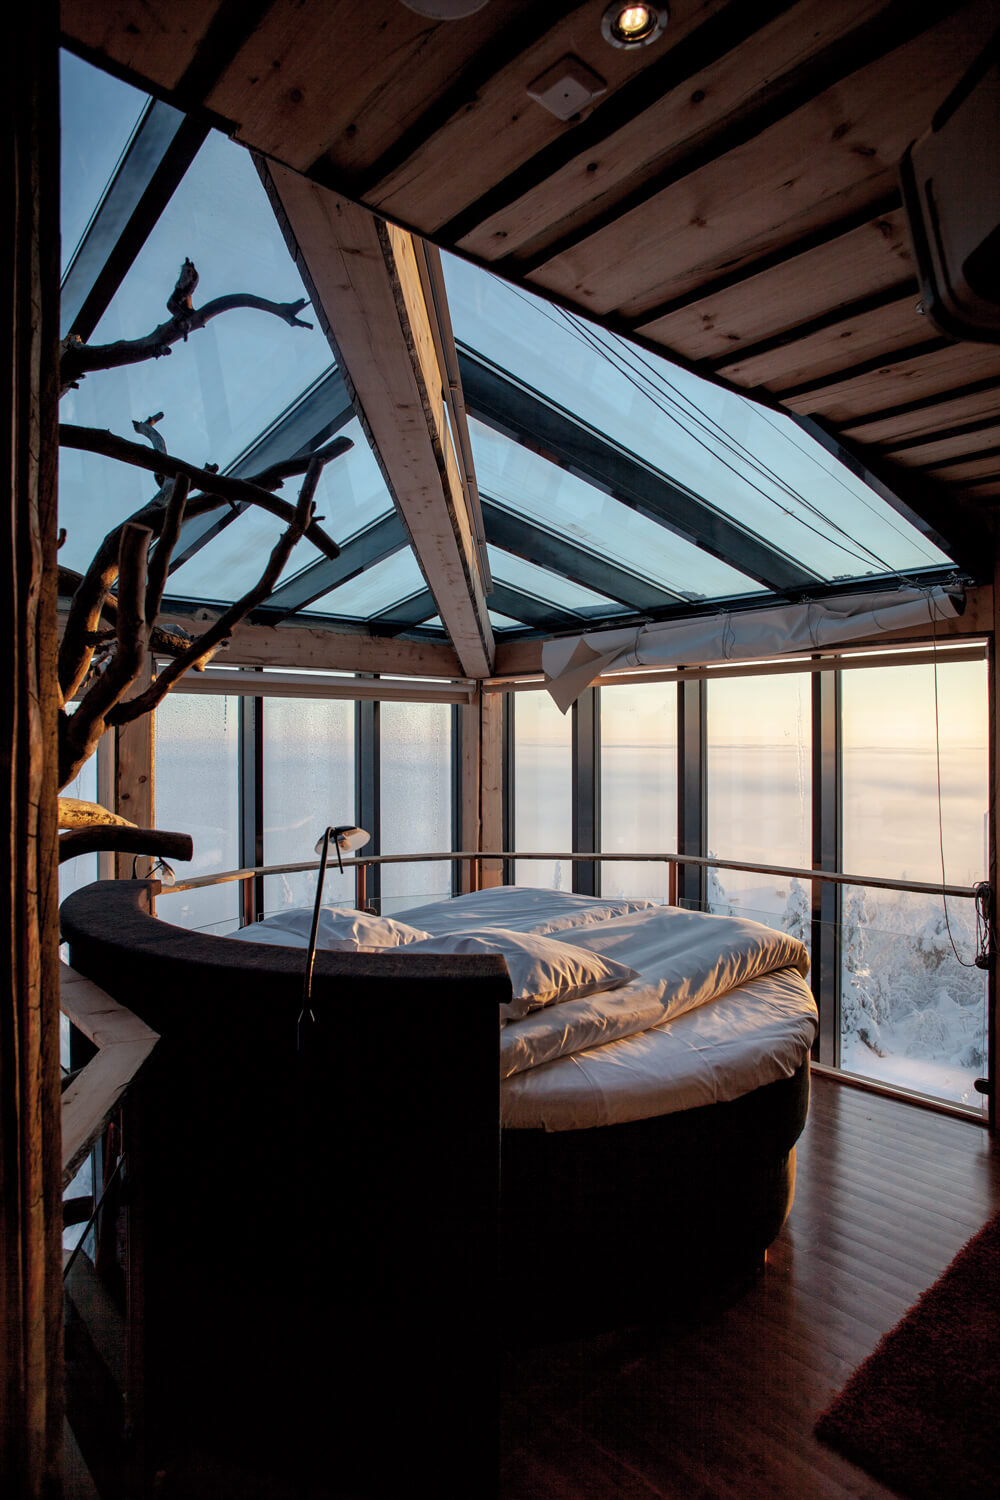 hotel rooms with a view, best hotel rooms with a view, best hotels with a view, best view hotel, best hotel views, hotels with the best views, best hotel room views, hotels with best views, hotel best view, best hotel views in the world, best hotels with a view, best hotel room views in the world